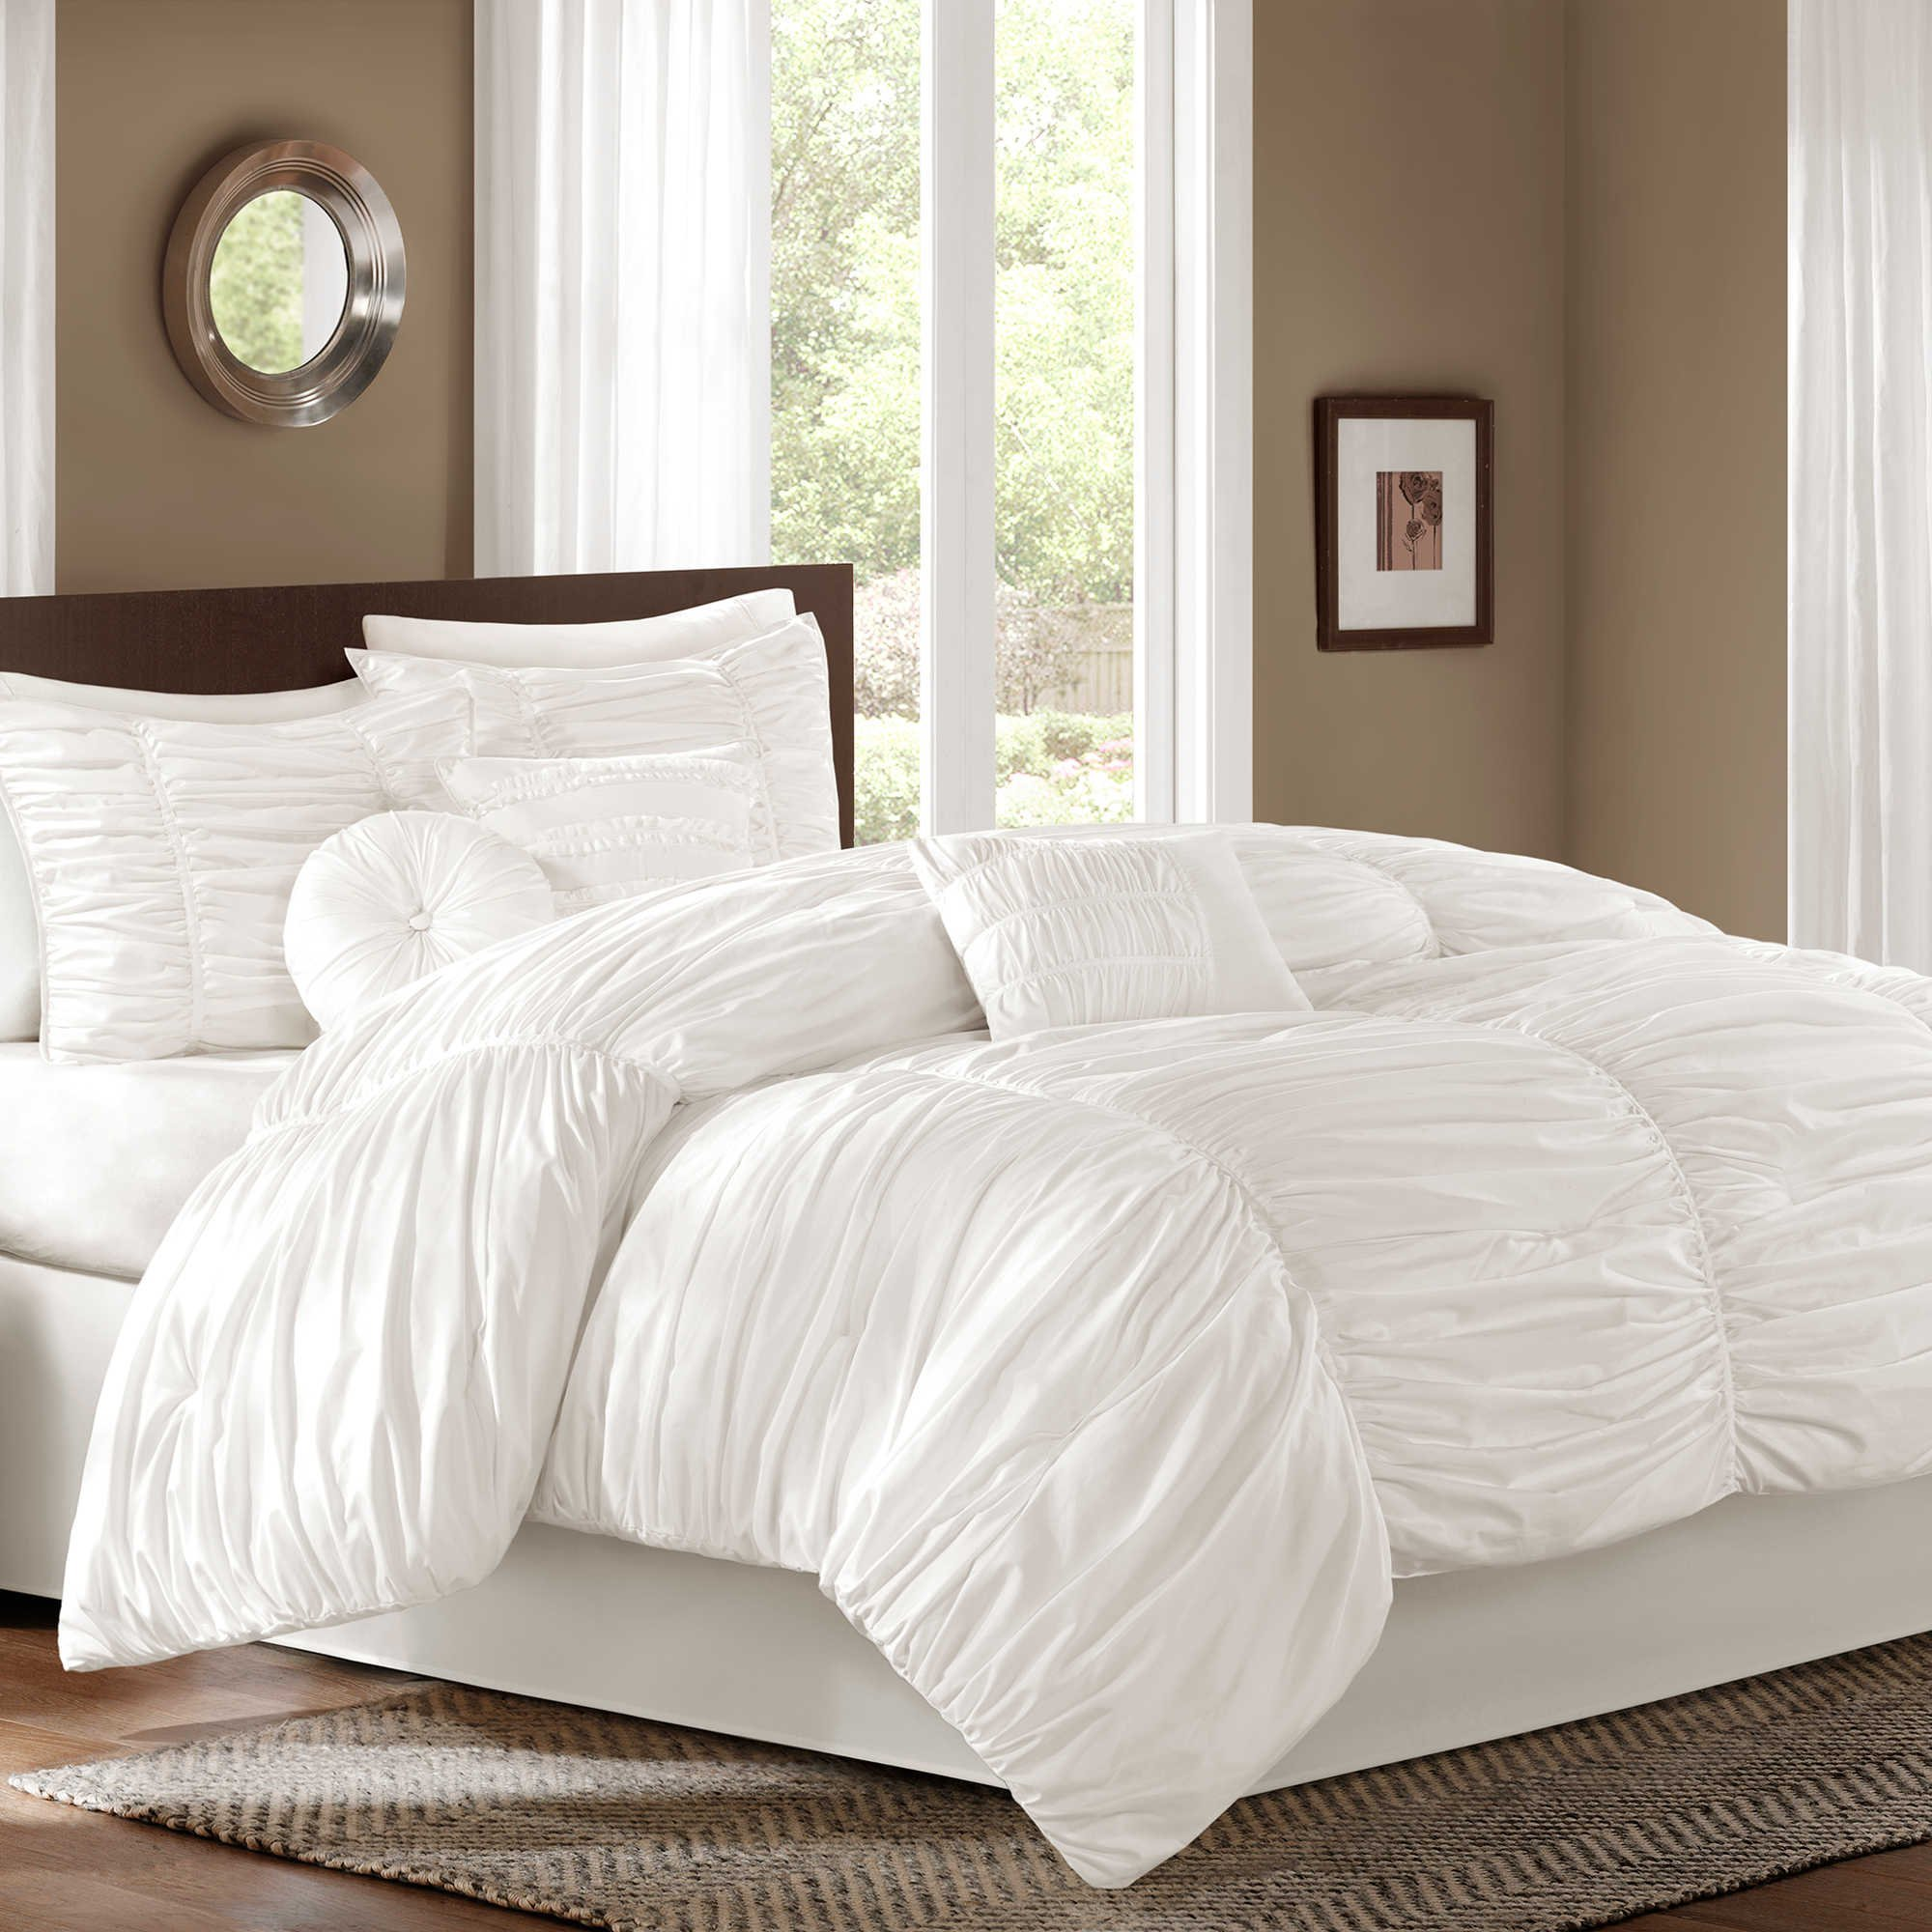 Great Quality Sidney 7 piece Full Comforter Set Features a Billowing, Ruched Fabric, Decorative Pillows in White